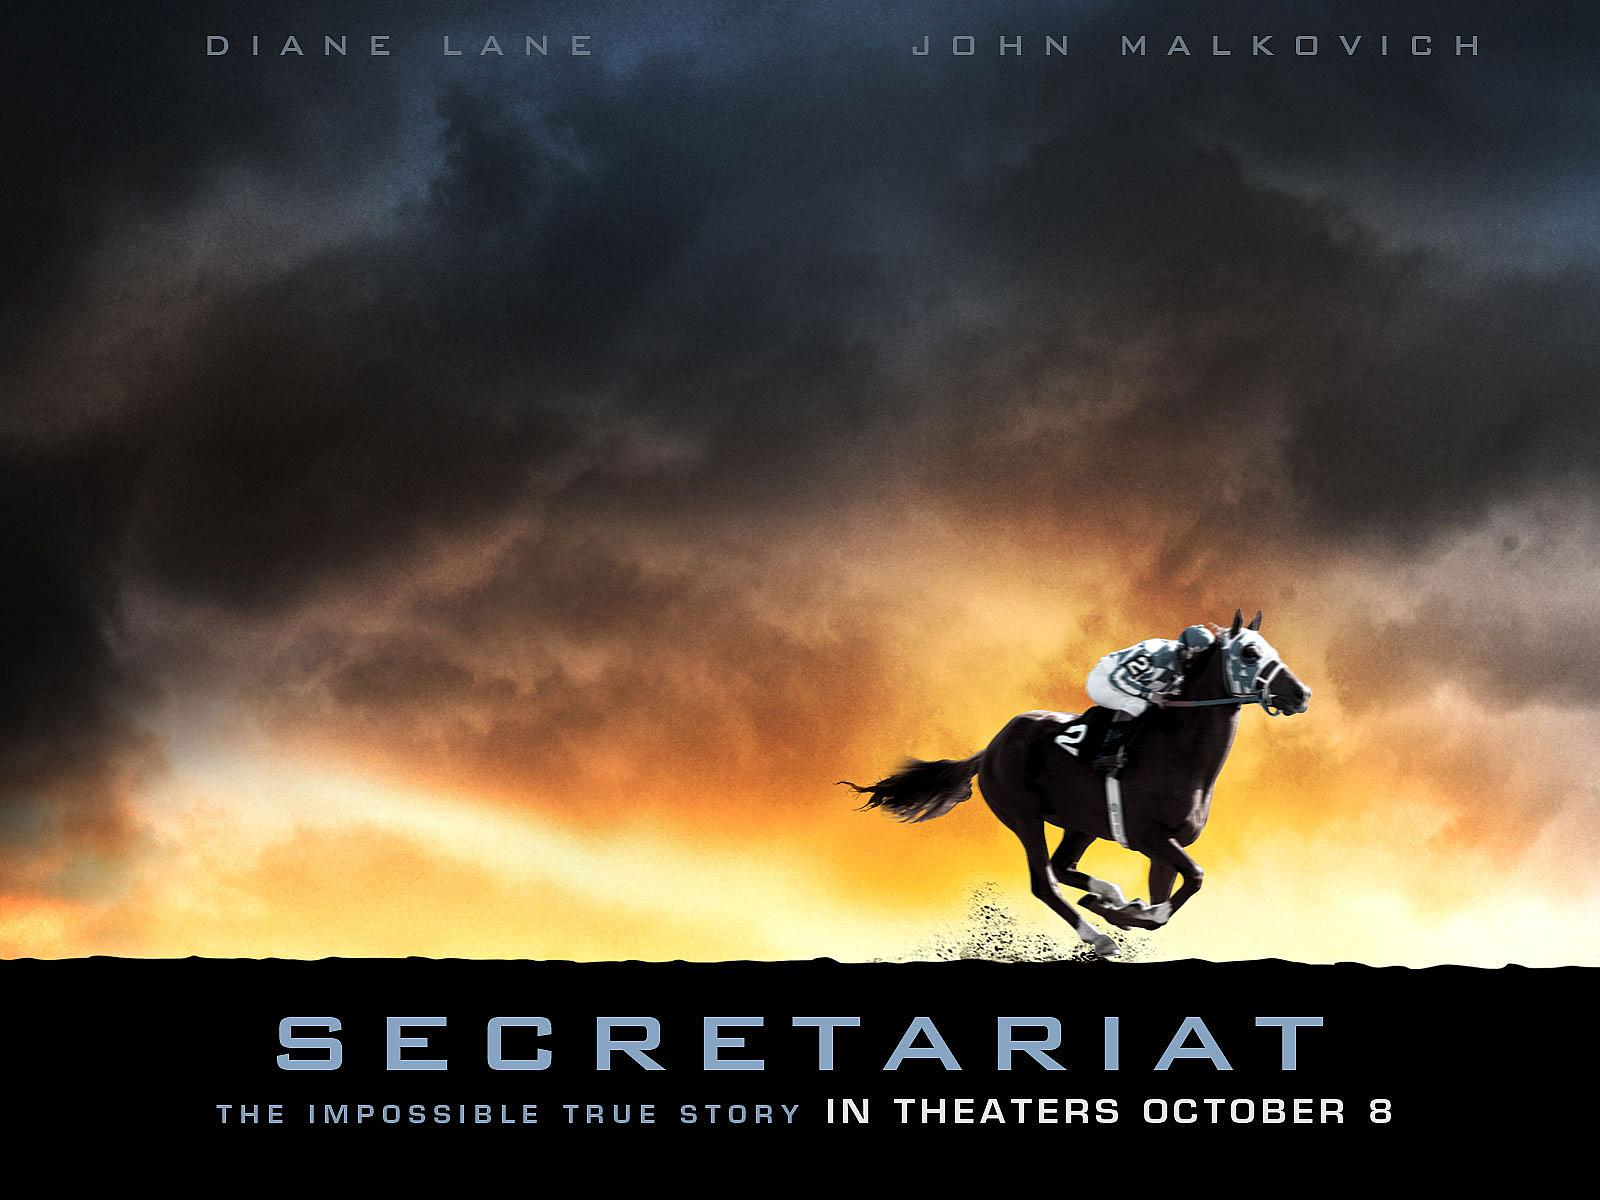 Rich Quotes Wallpaper Secretariat Disney Makes The Rare Good Family Movie